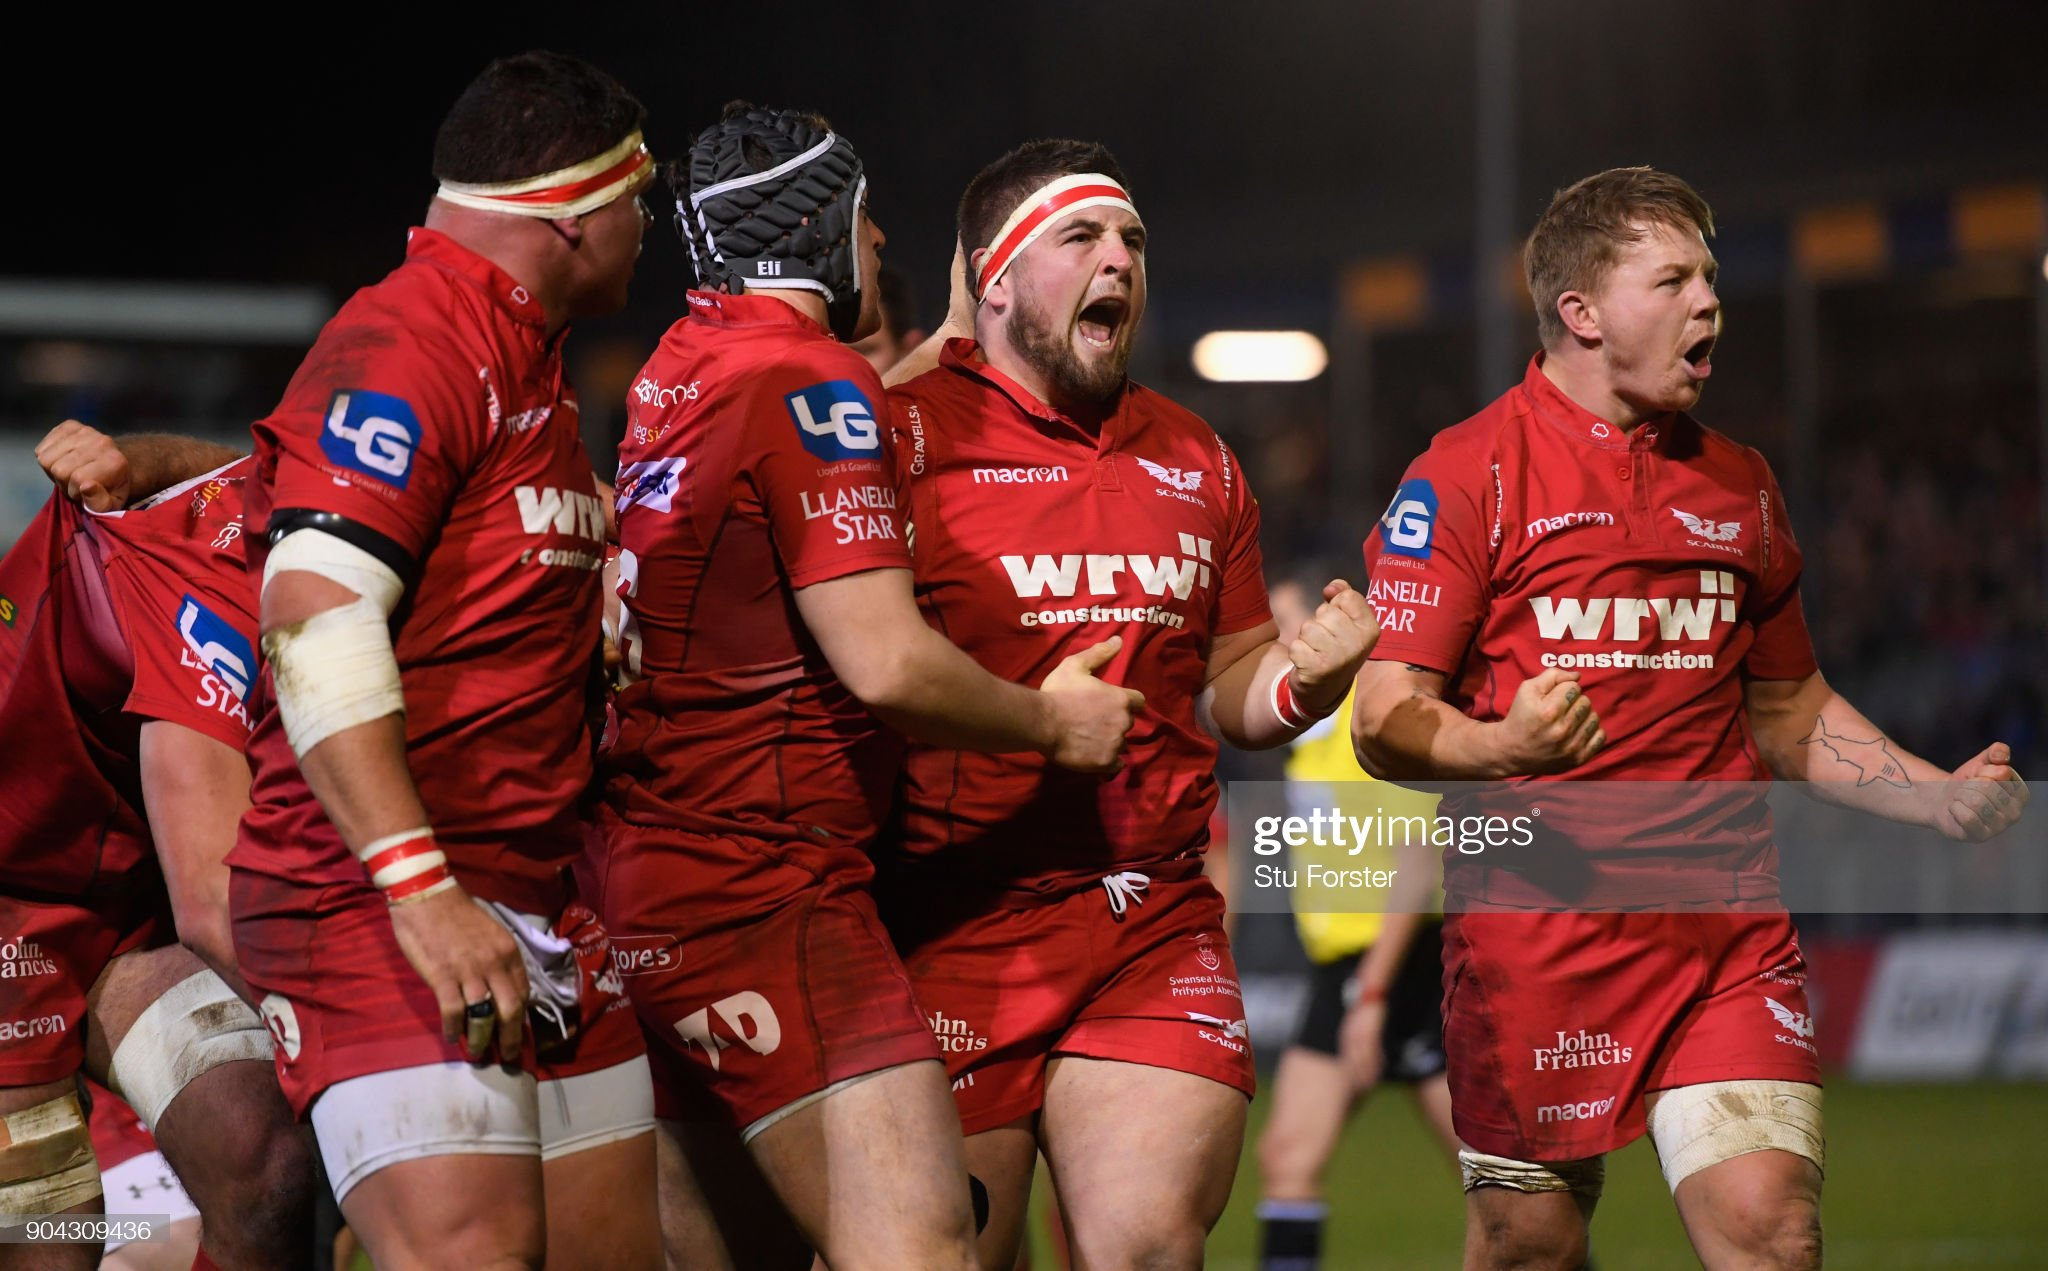 Scarlets Look to Emulate Manchester United Model, Says New Chairman Simon Muderack